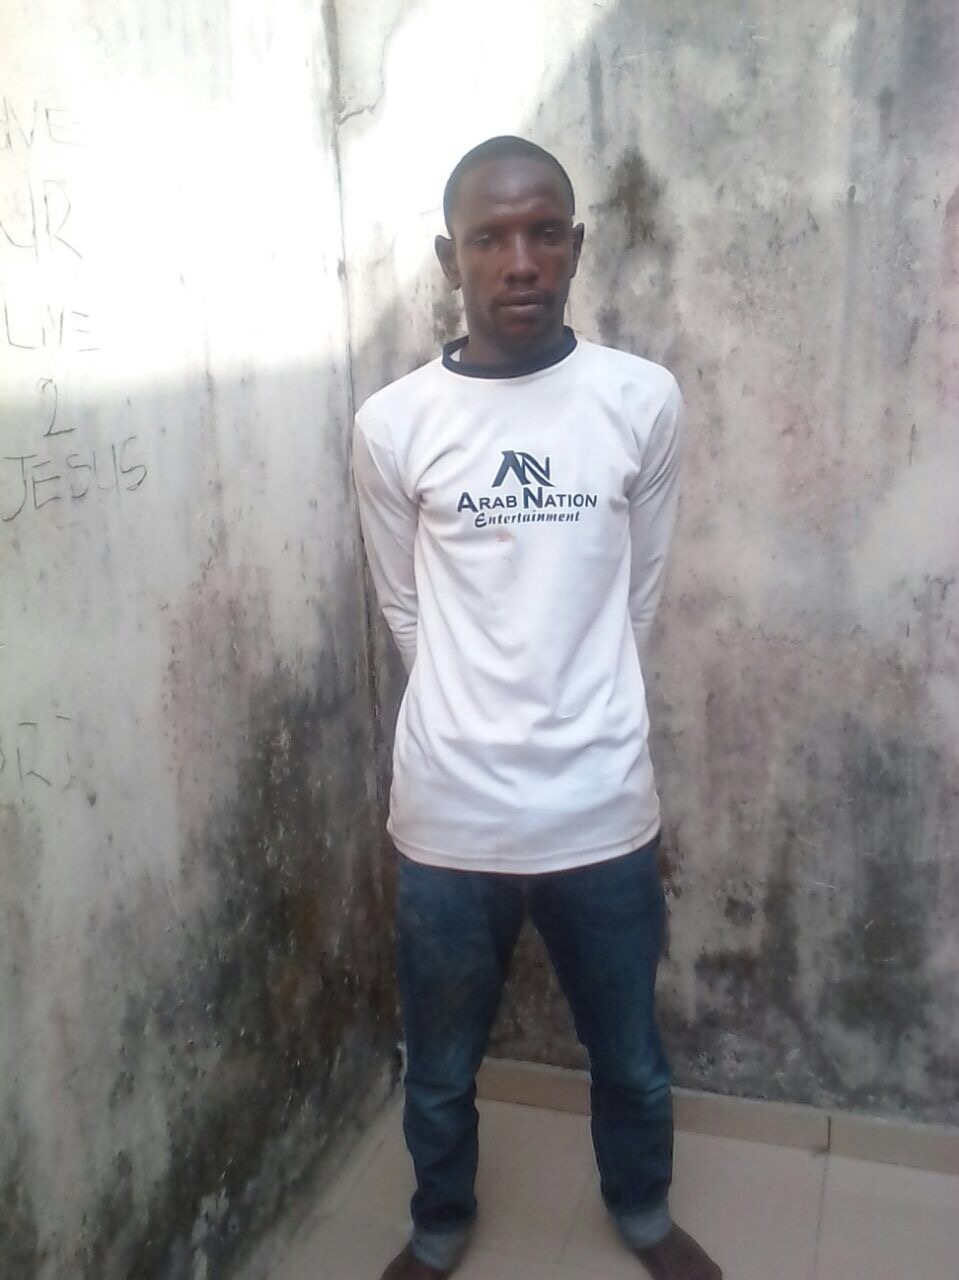 Lagos Police Arrest Man Who Killed Co-Worker, Cut Him To Pieces After Altercation